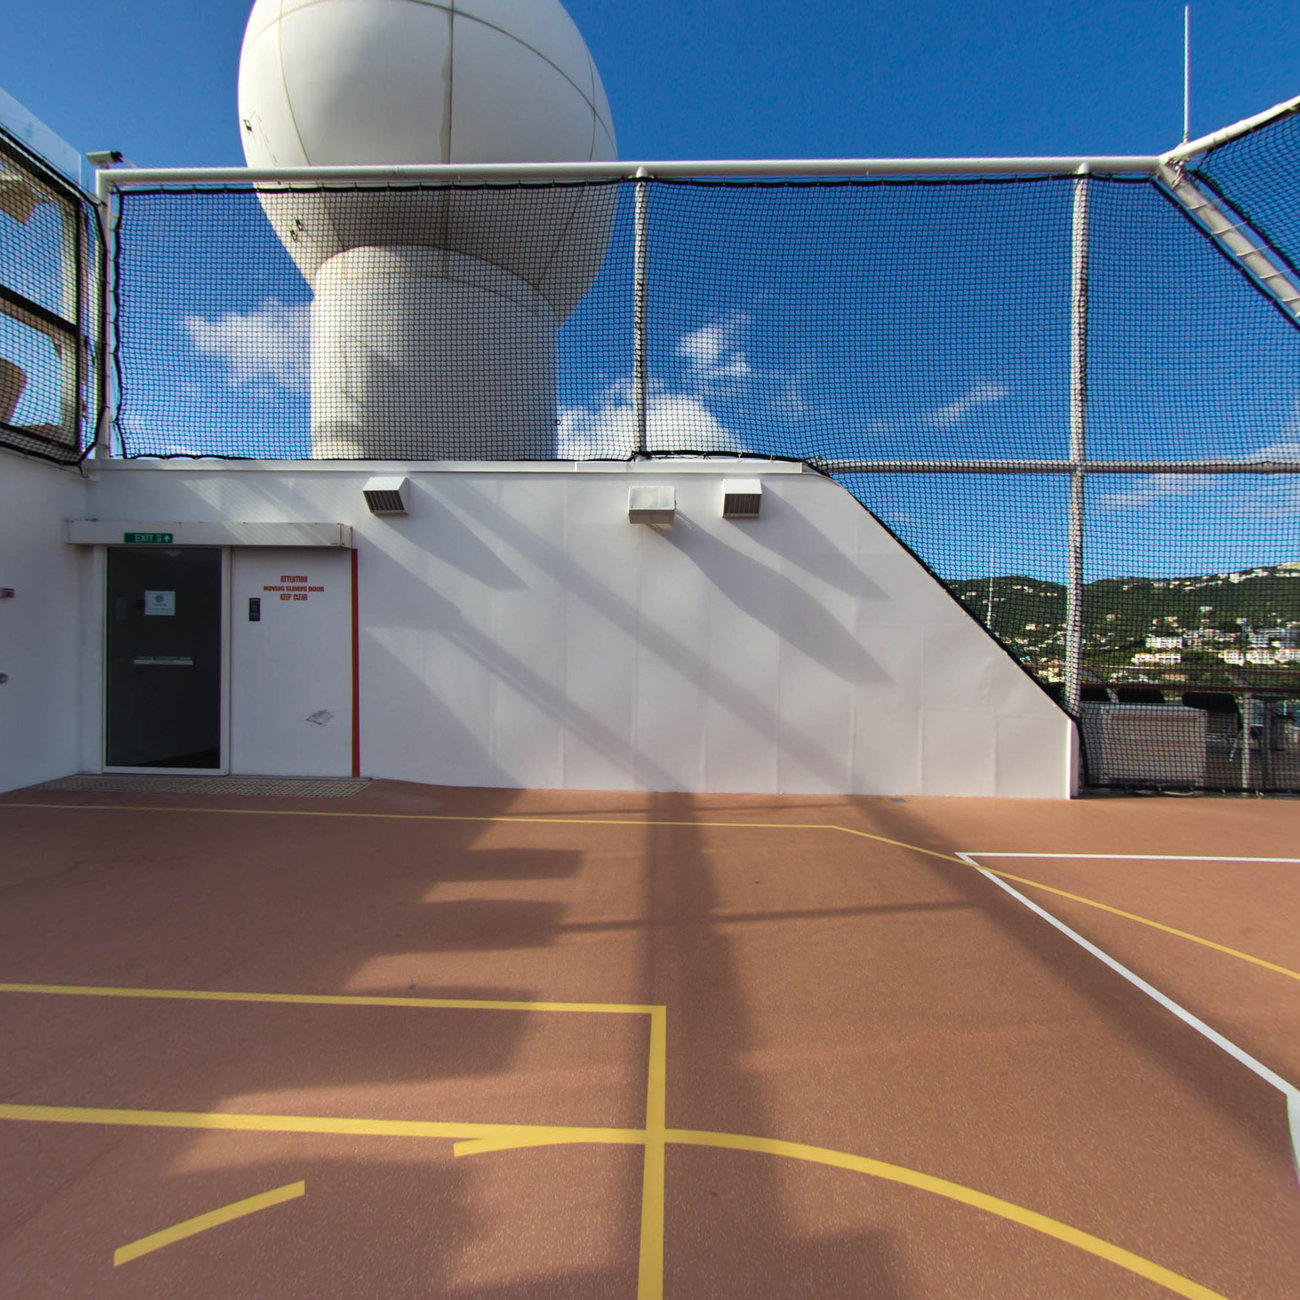 Panorama of Basketball Court on Celebrity Equinox